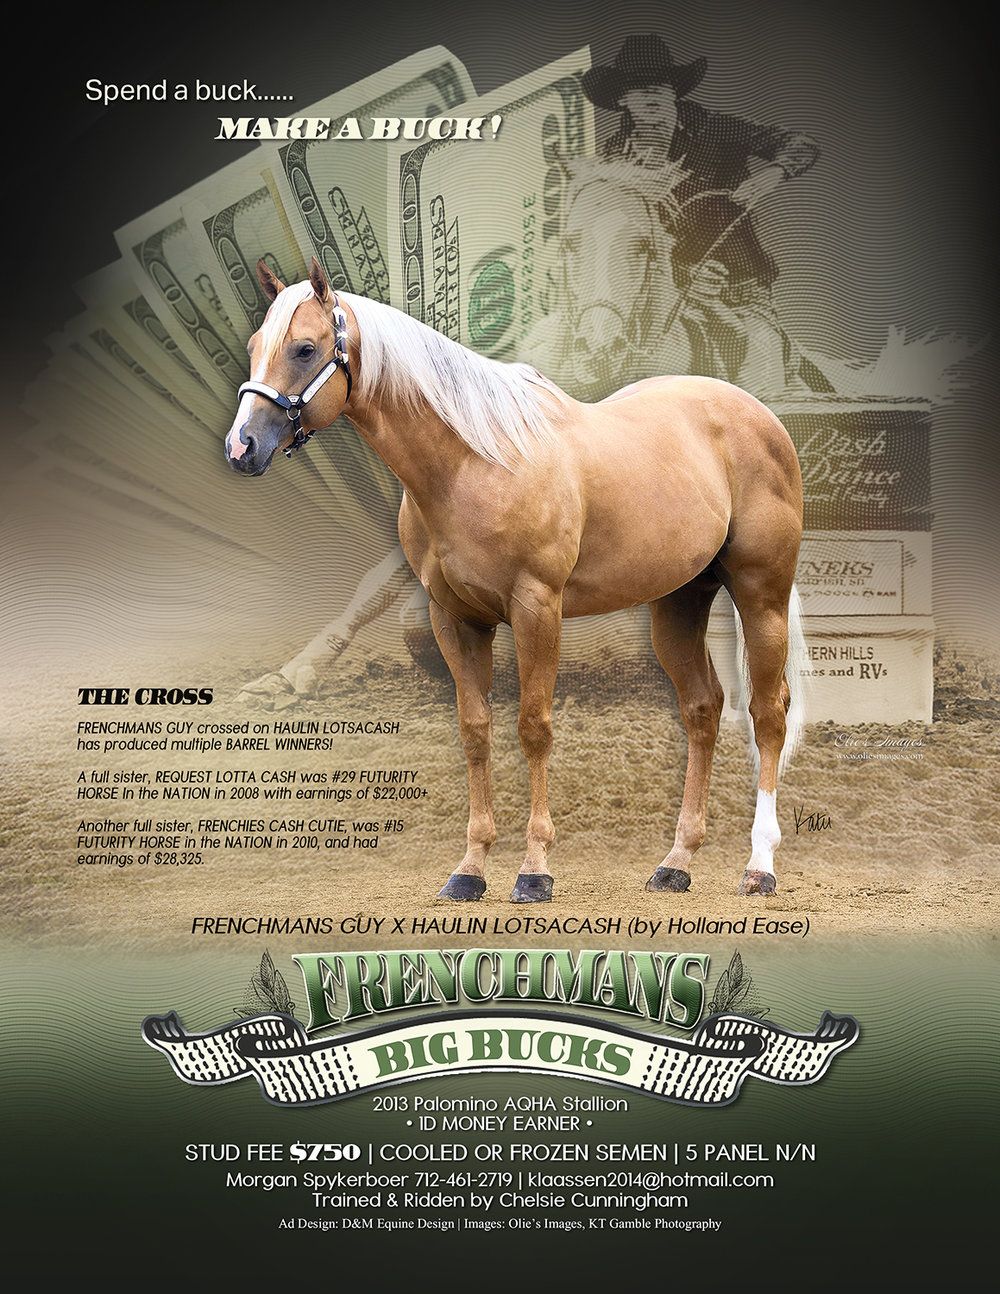 2019 Frenchmans Big Bucks Stallion Ad-FINAL for web and  Facebook.jpg